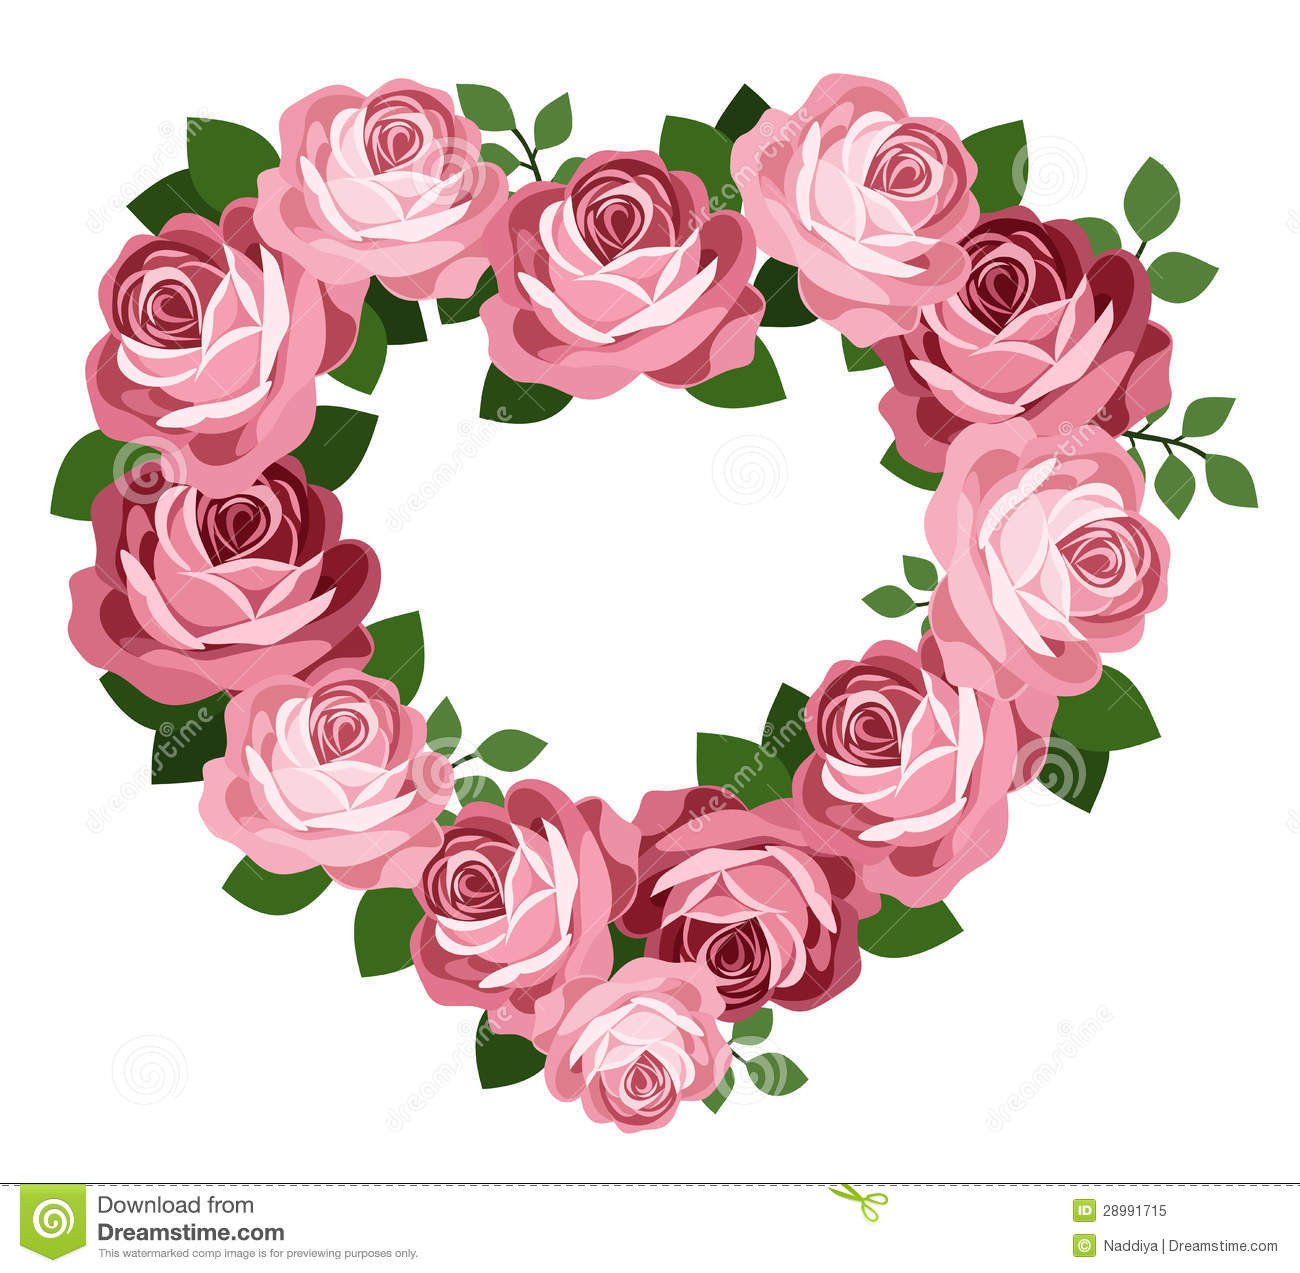 Pink Roses Heart Frame. Royalty Free Stock Photo - Image: 28991715 Pink Roses And Hearts